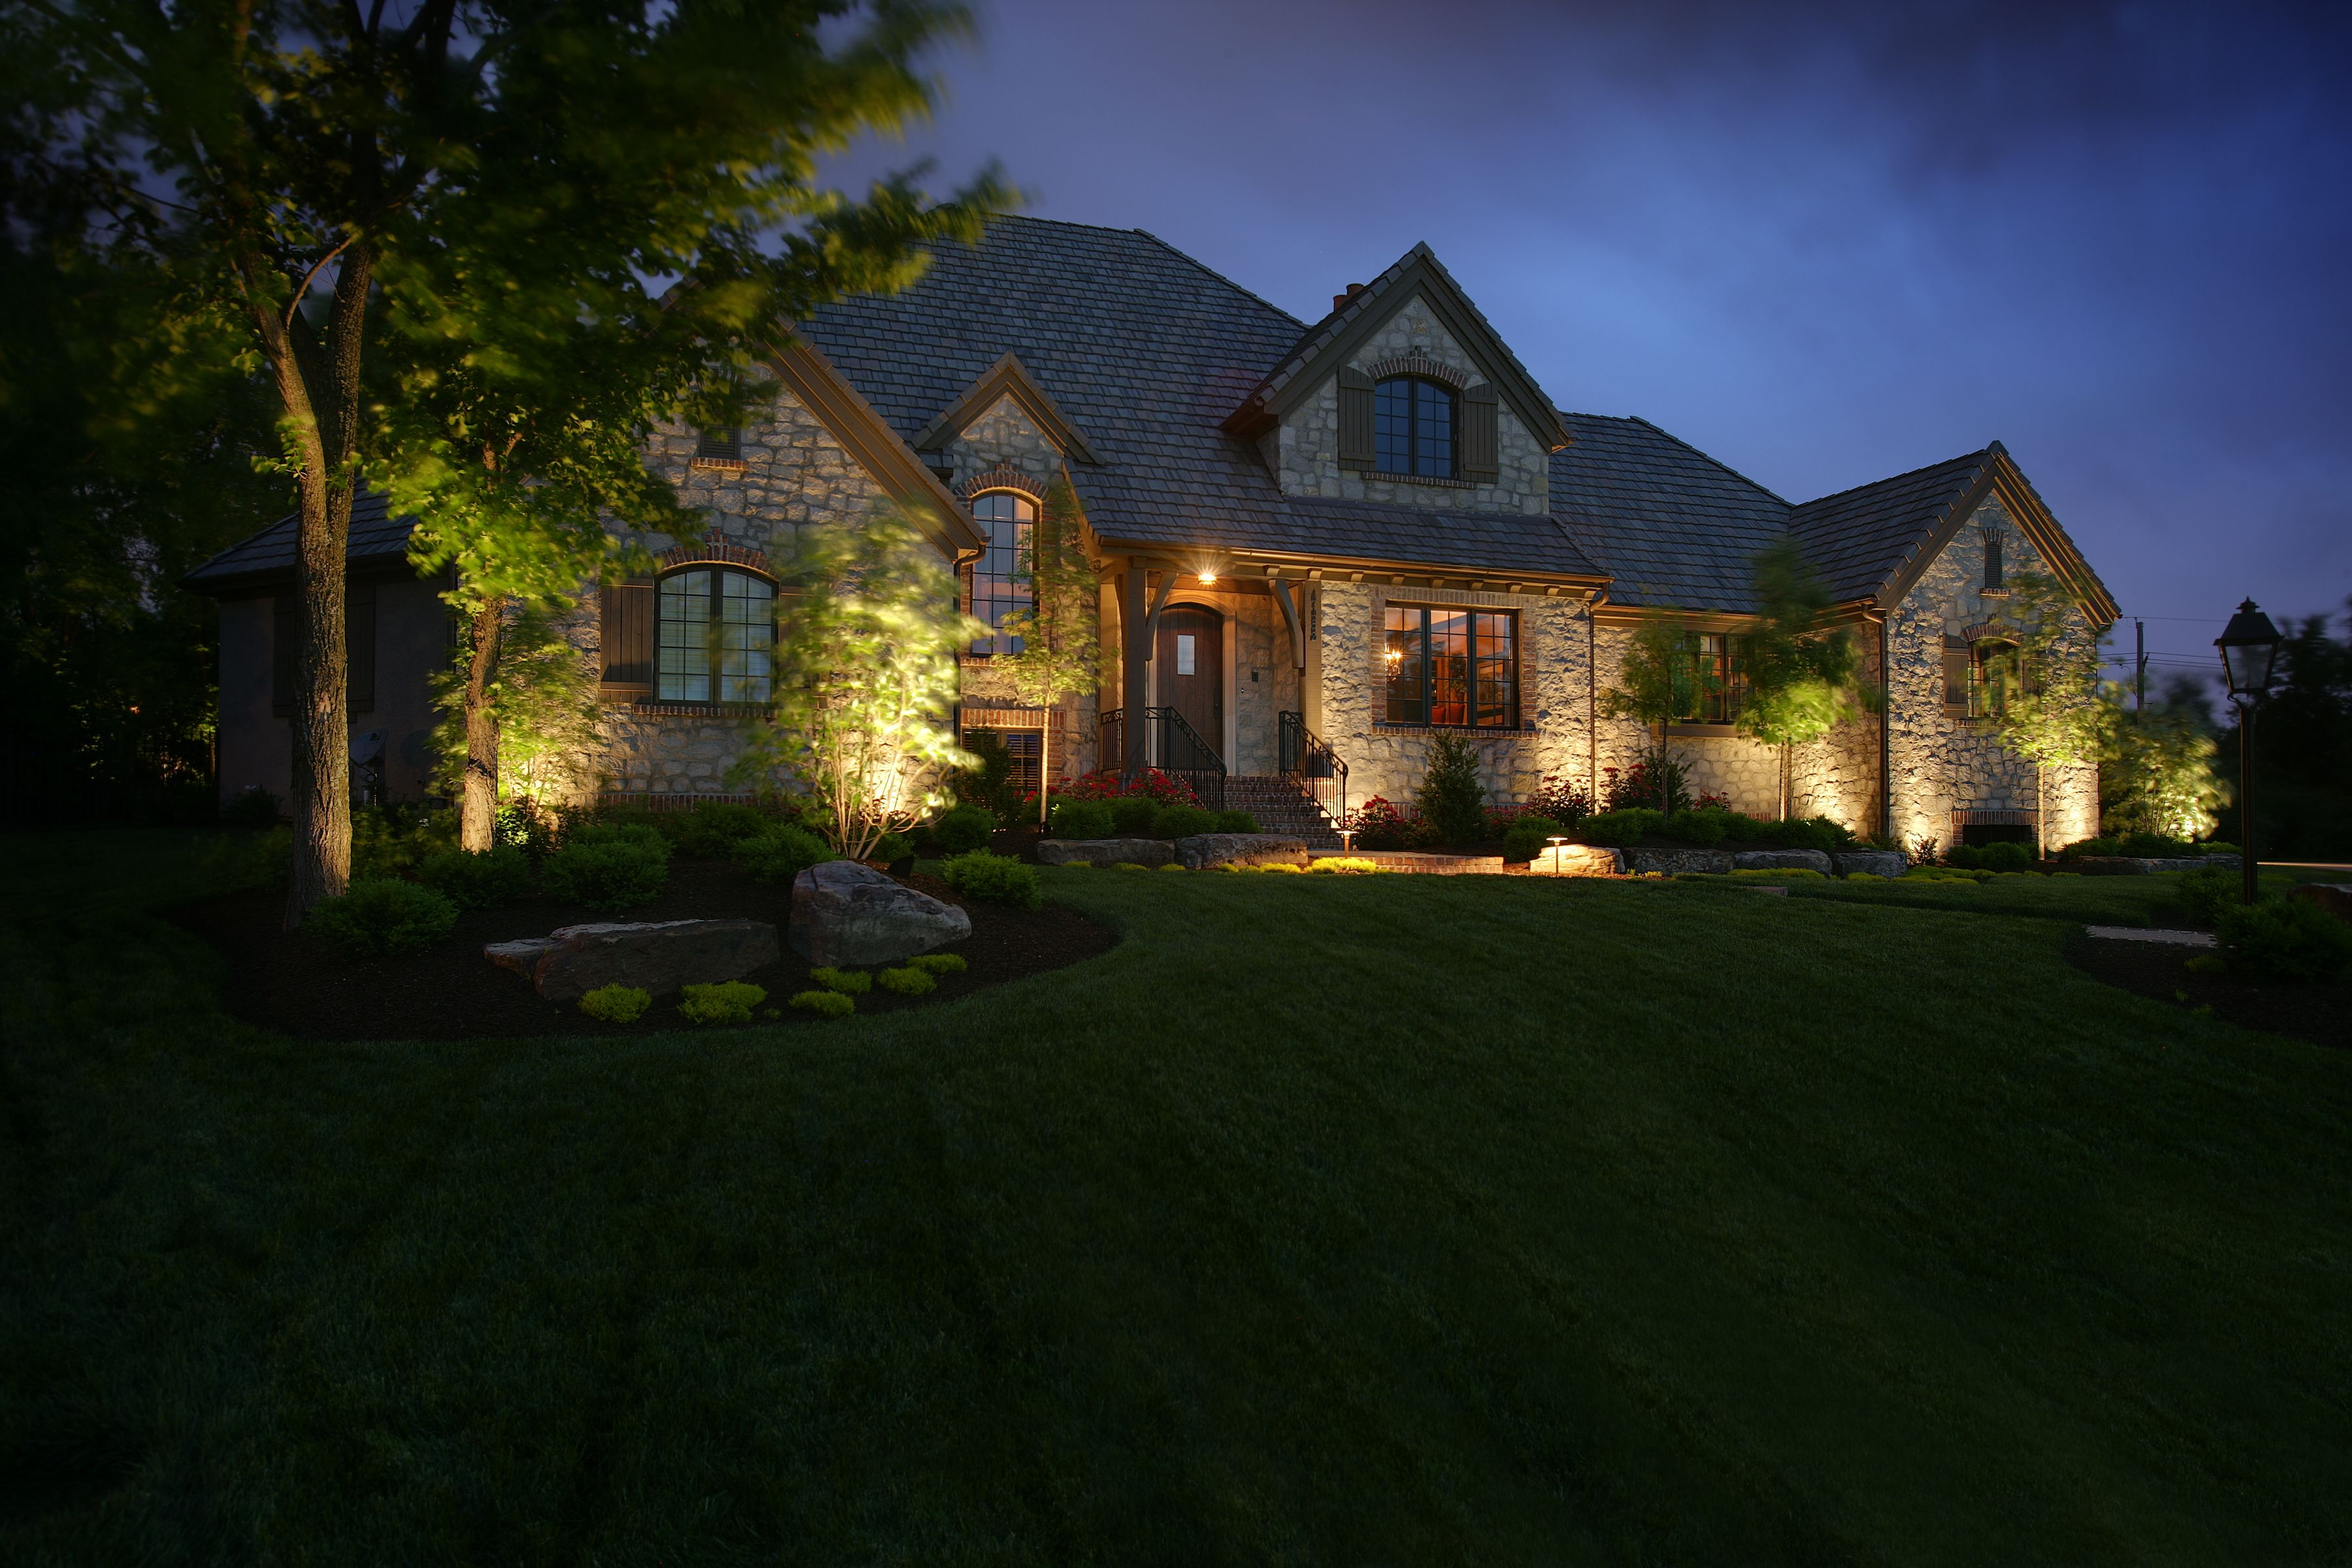 Outdoor lighting company lightscapes southern outdoor lighting - Outdoor Lighting Perspectives Of Augusta